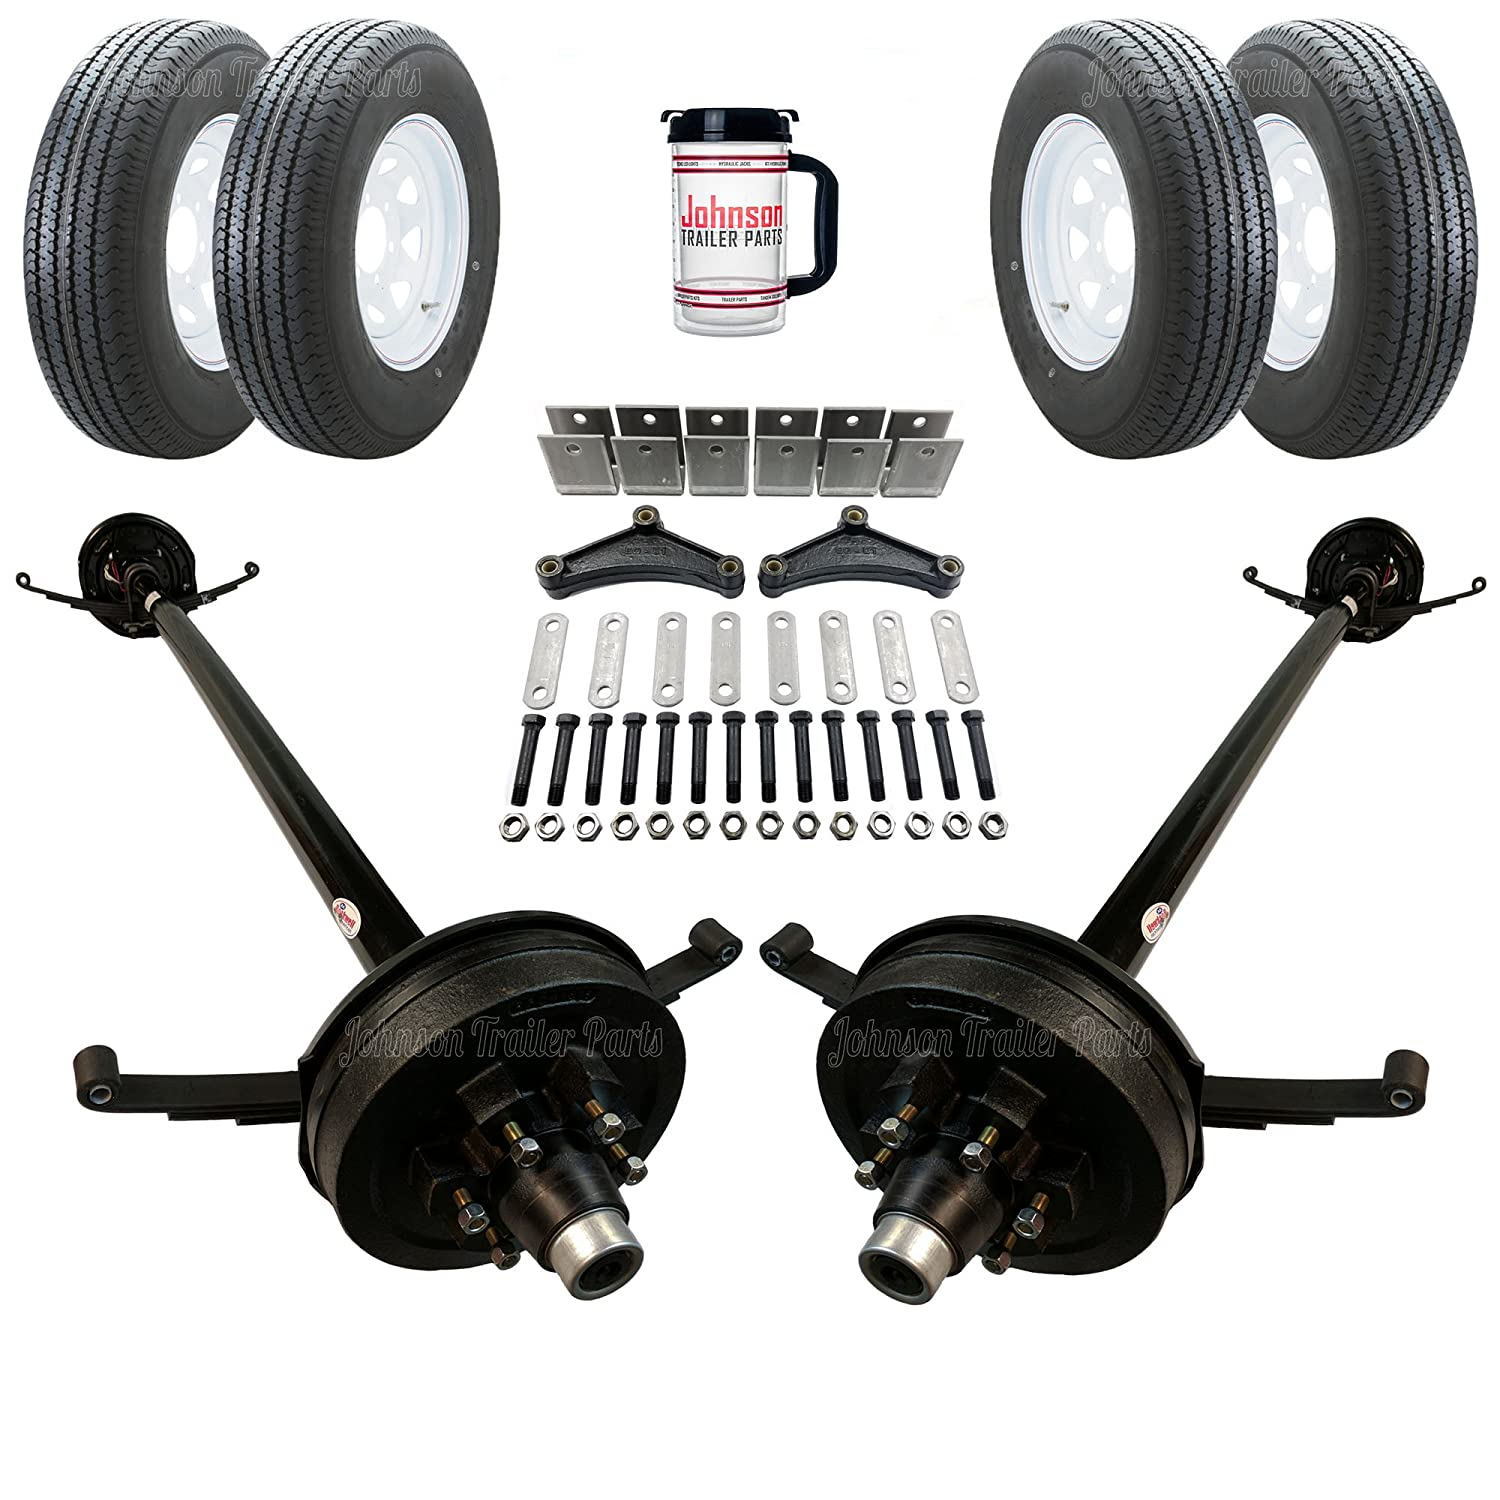 Rockwell American Tandem 5, 200 lb Electric Brake Trailer Axle Kit - Includes Trailer Tires & Wheels (95' Hubface - 80' Spring Center) 200 lb Electric Brake Trailer Axle Kit - Includes Trailer Tires & Wheels (95 Hubface - 80 Spring Center)